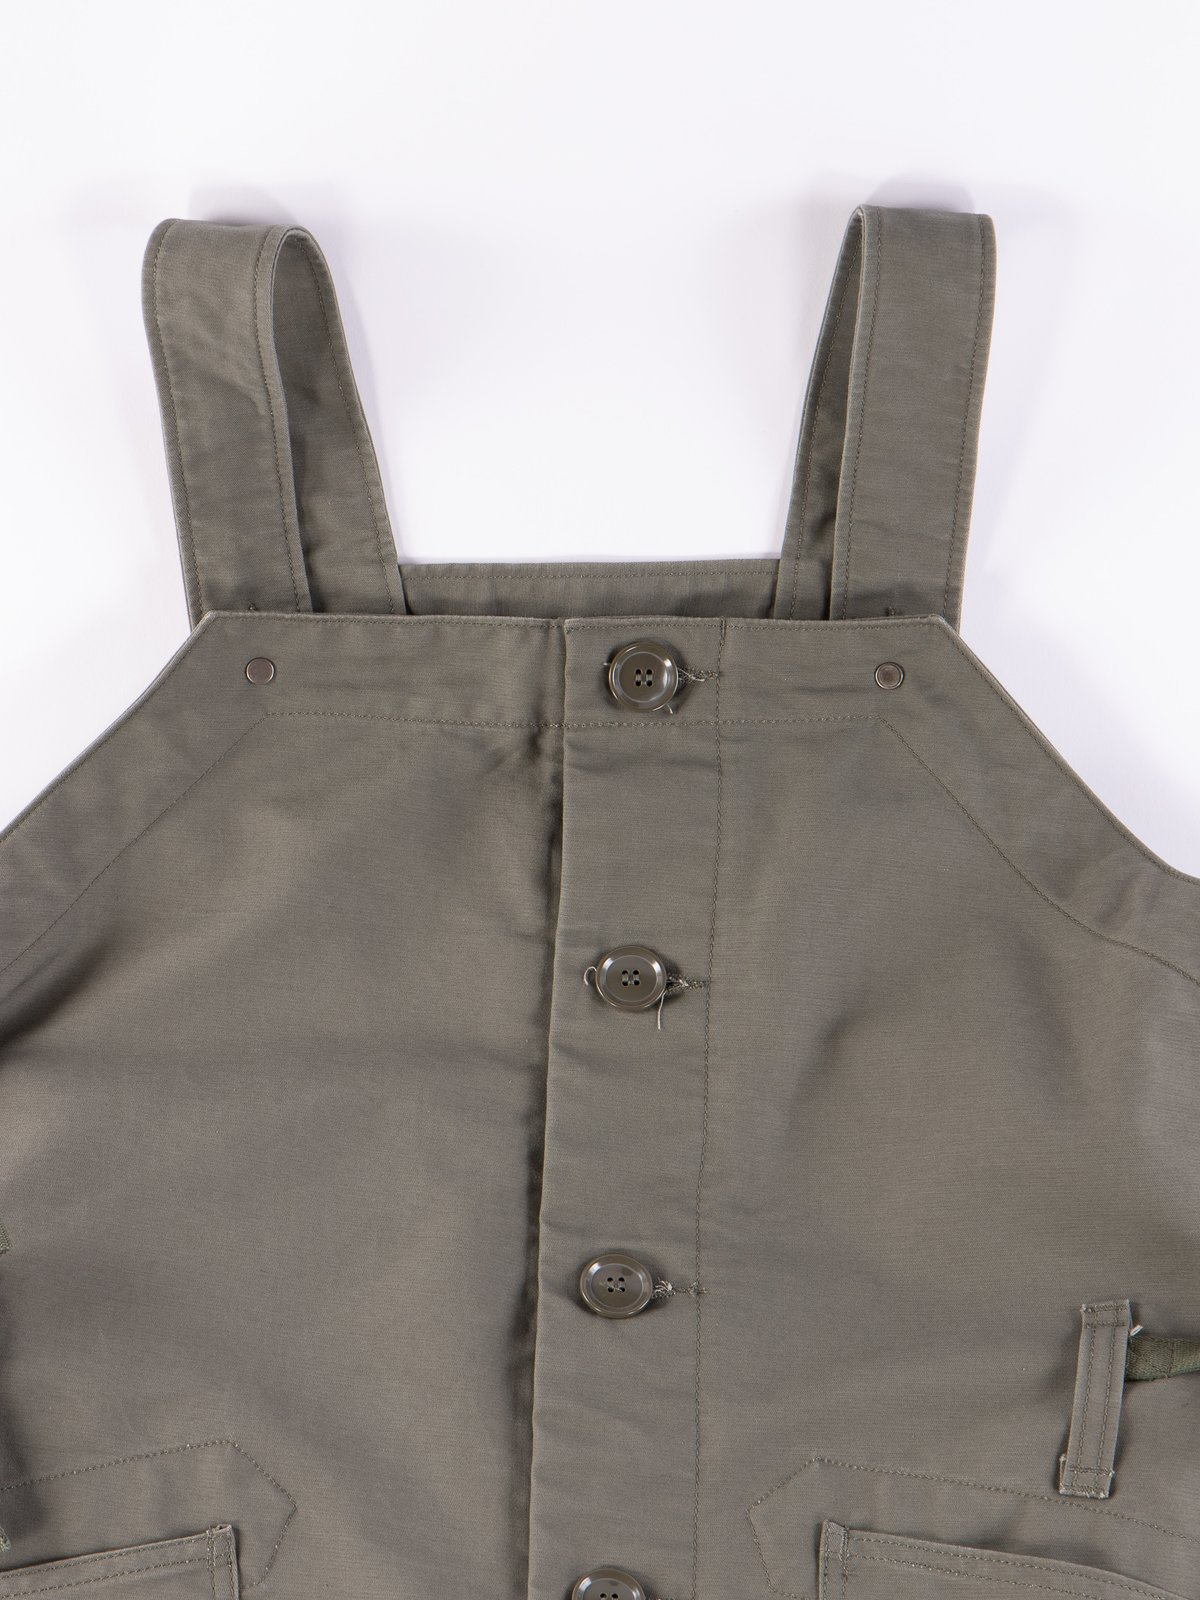 Olive Cotton Double Cloth Waders - Image 4